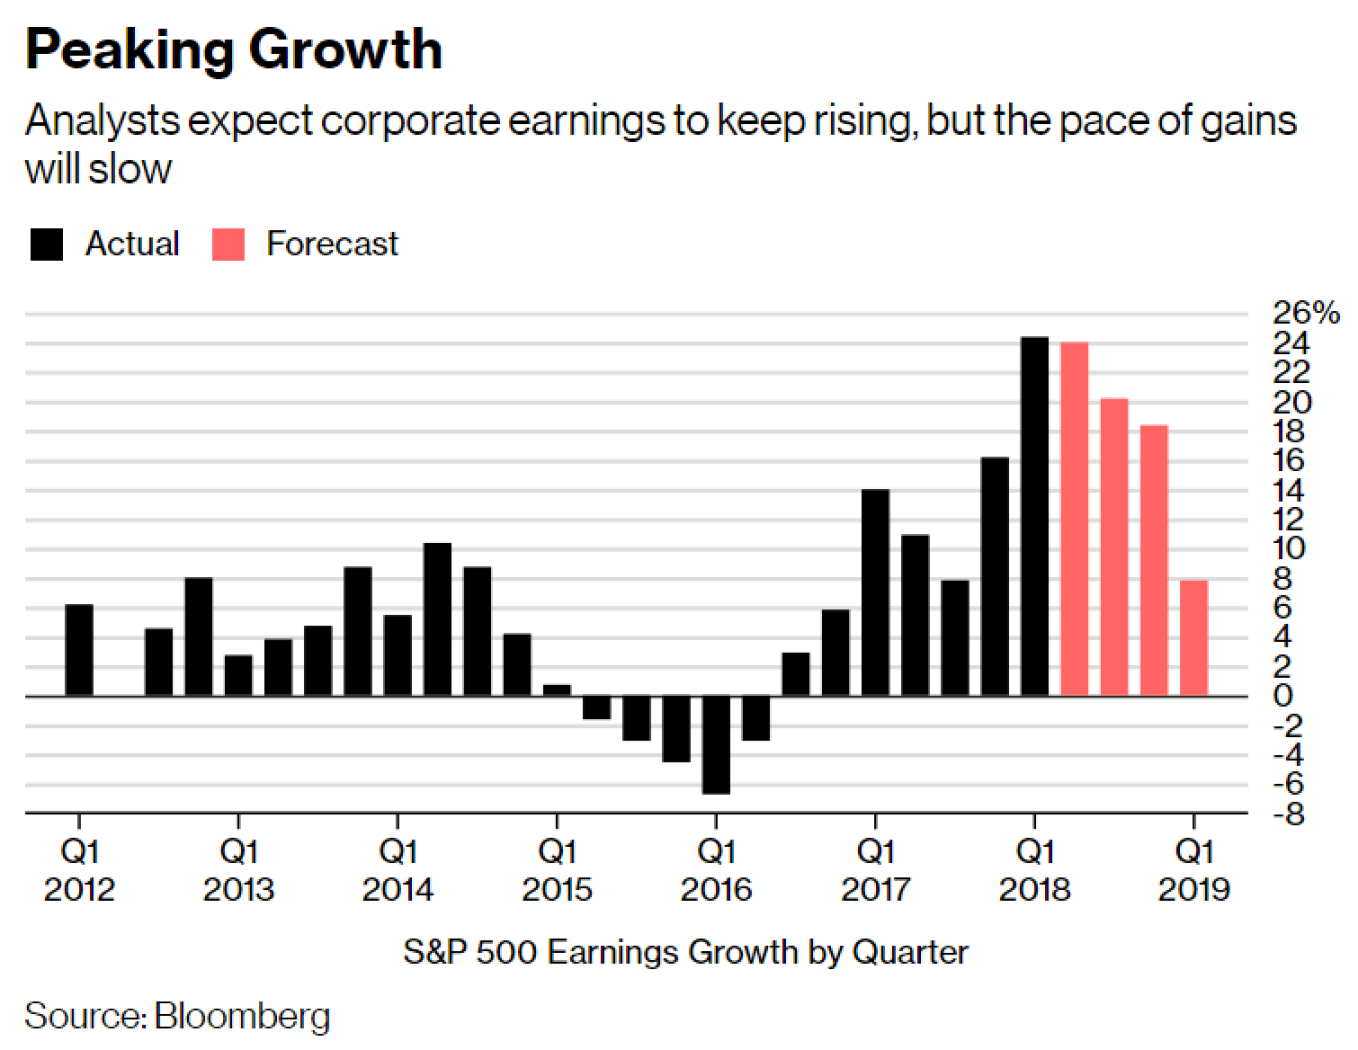 Corporate Earnings Growth - Actual and Expected